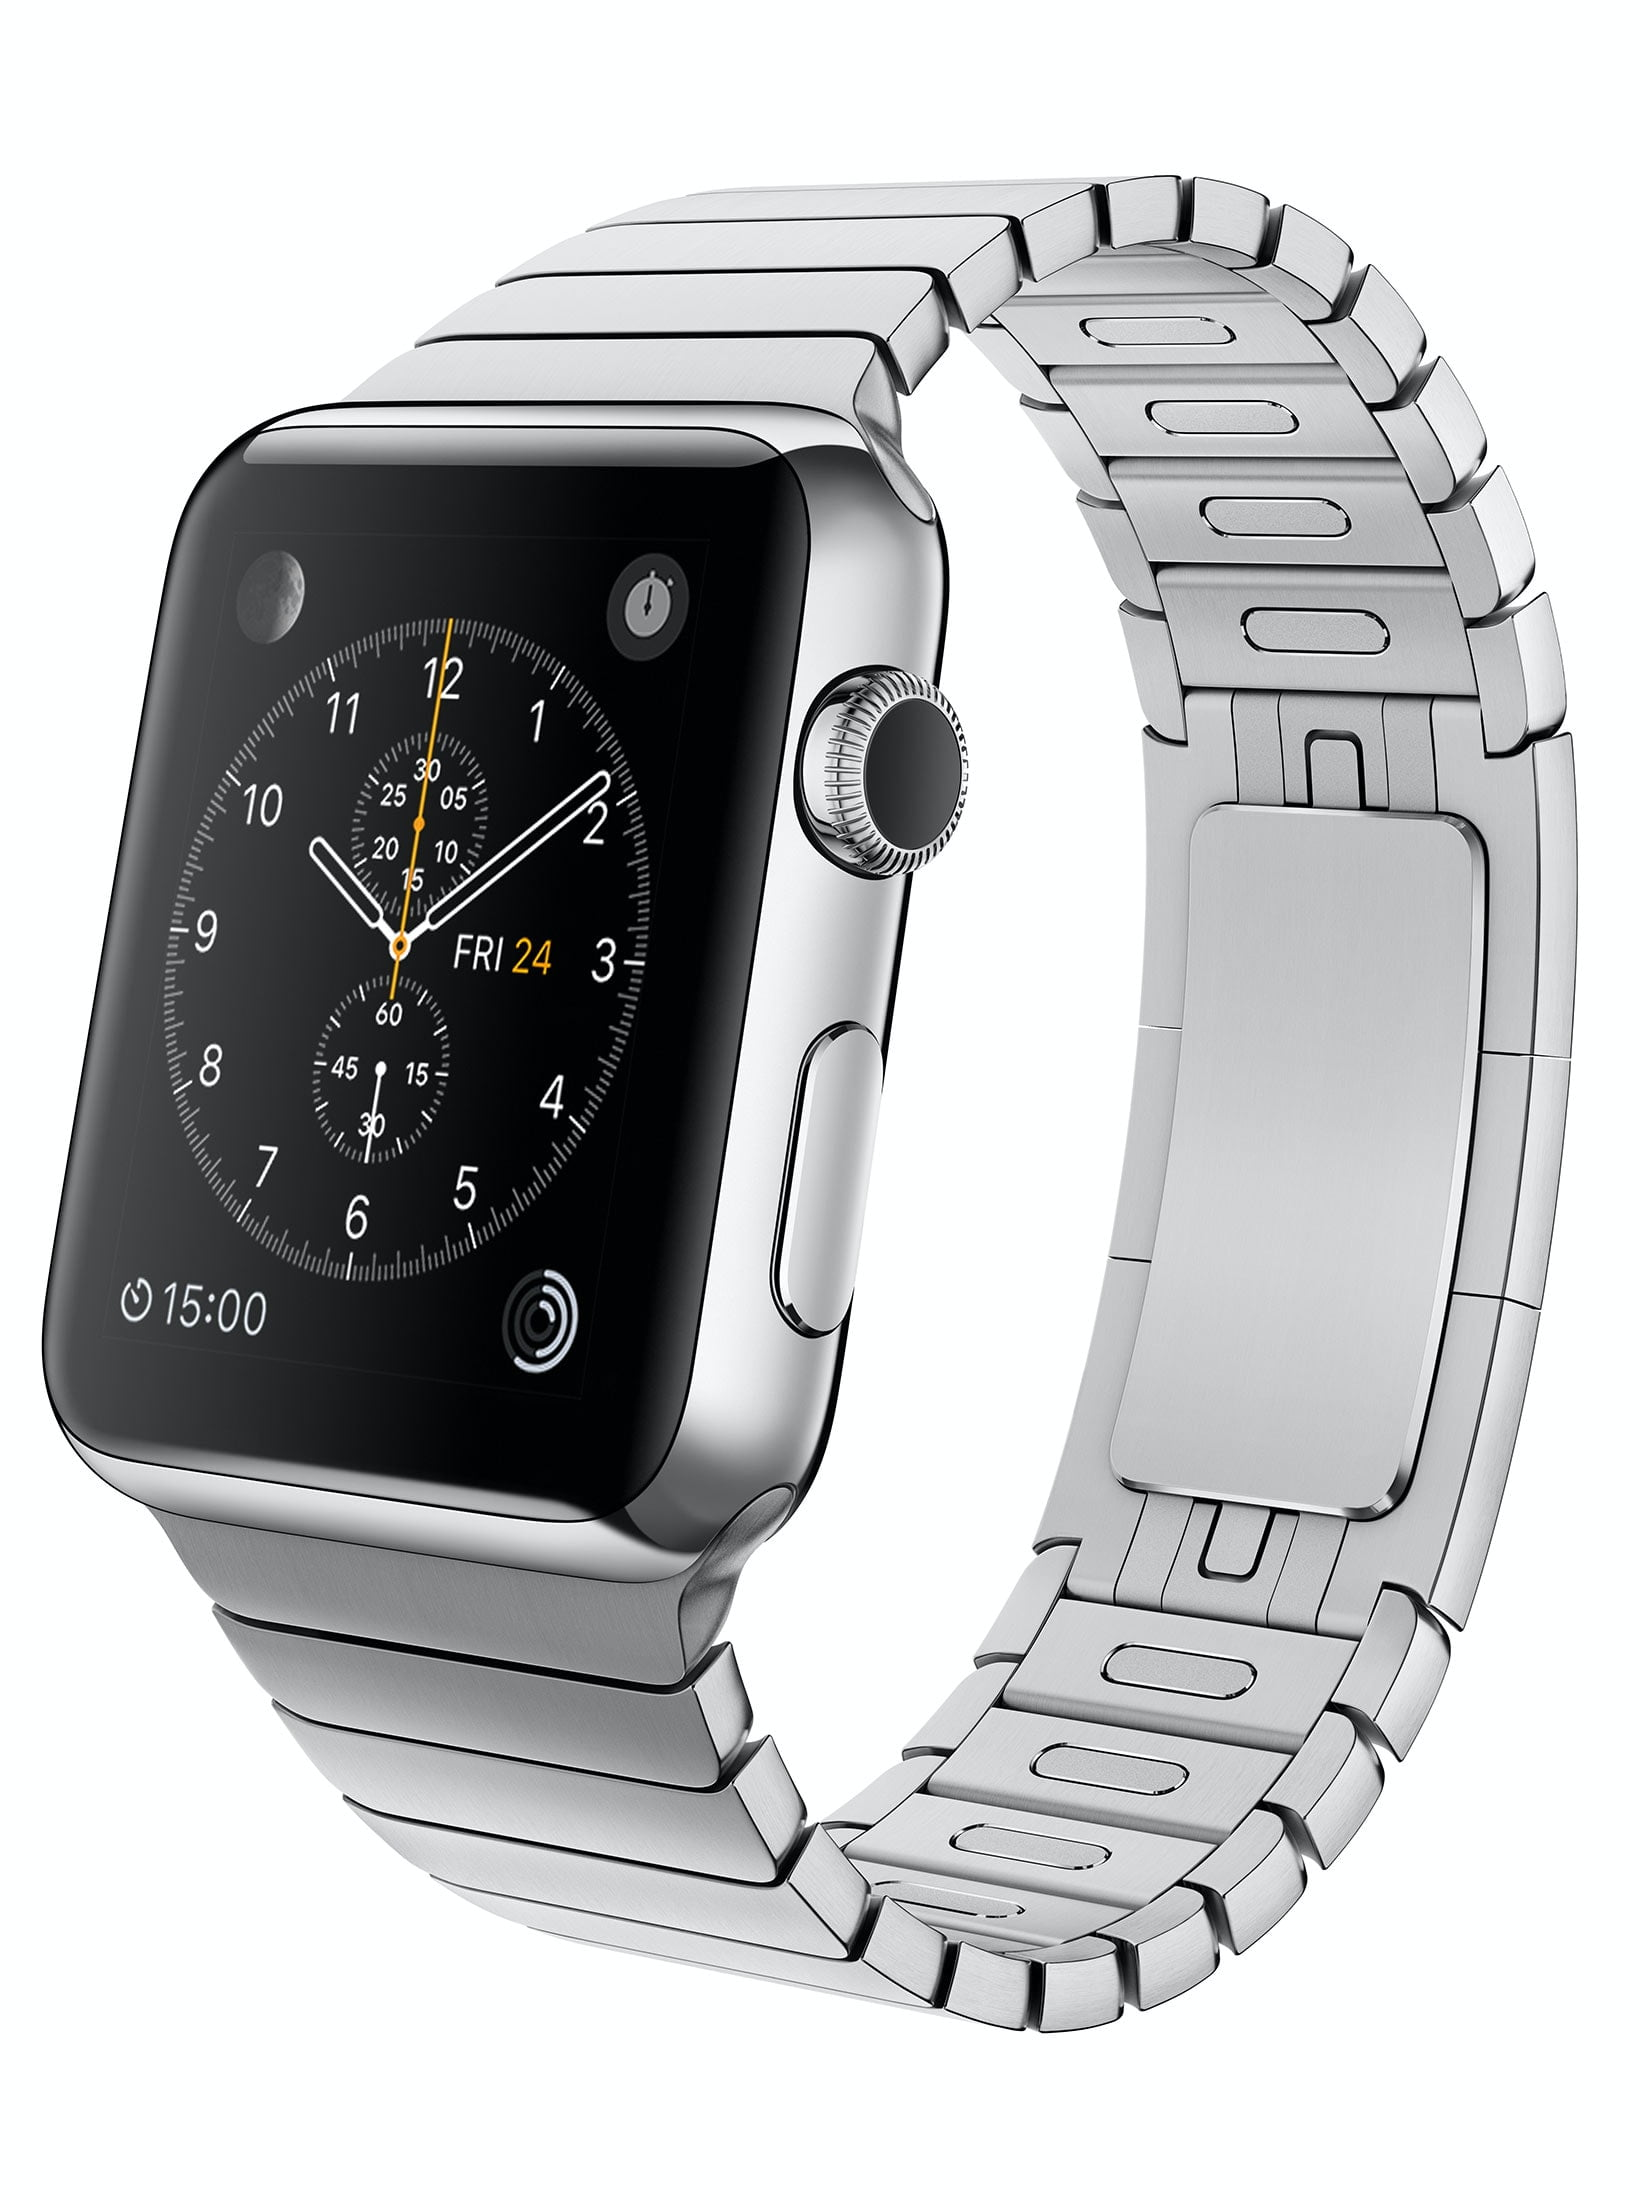 Apple Watch Could Sell 30 Million by 2015 Alone